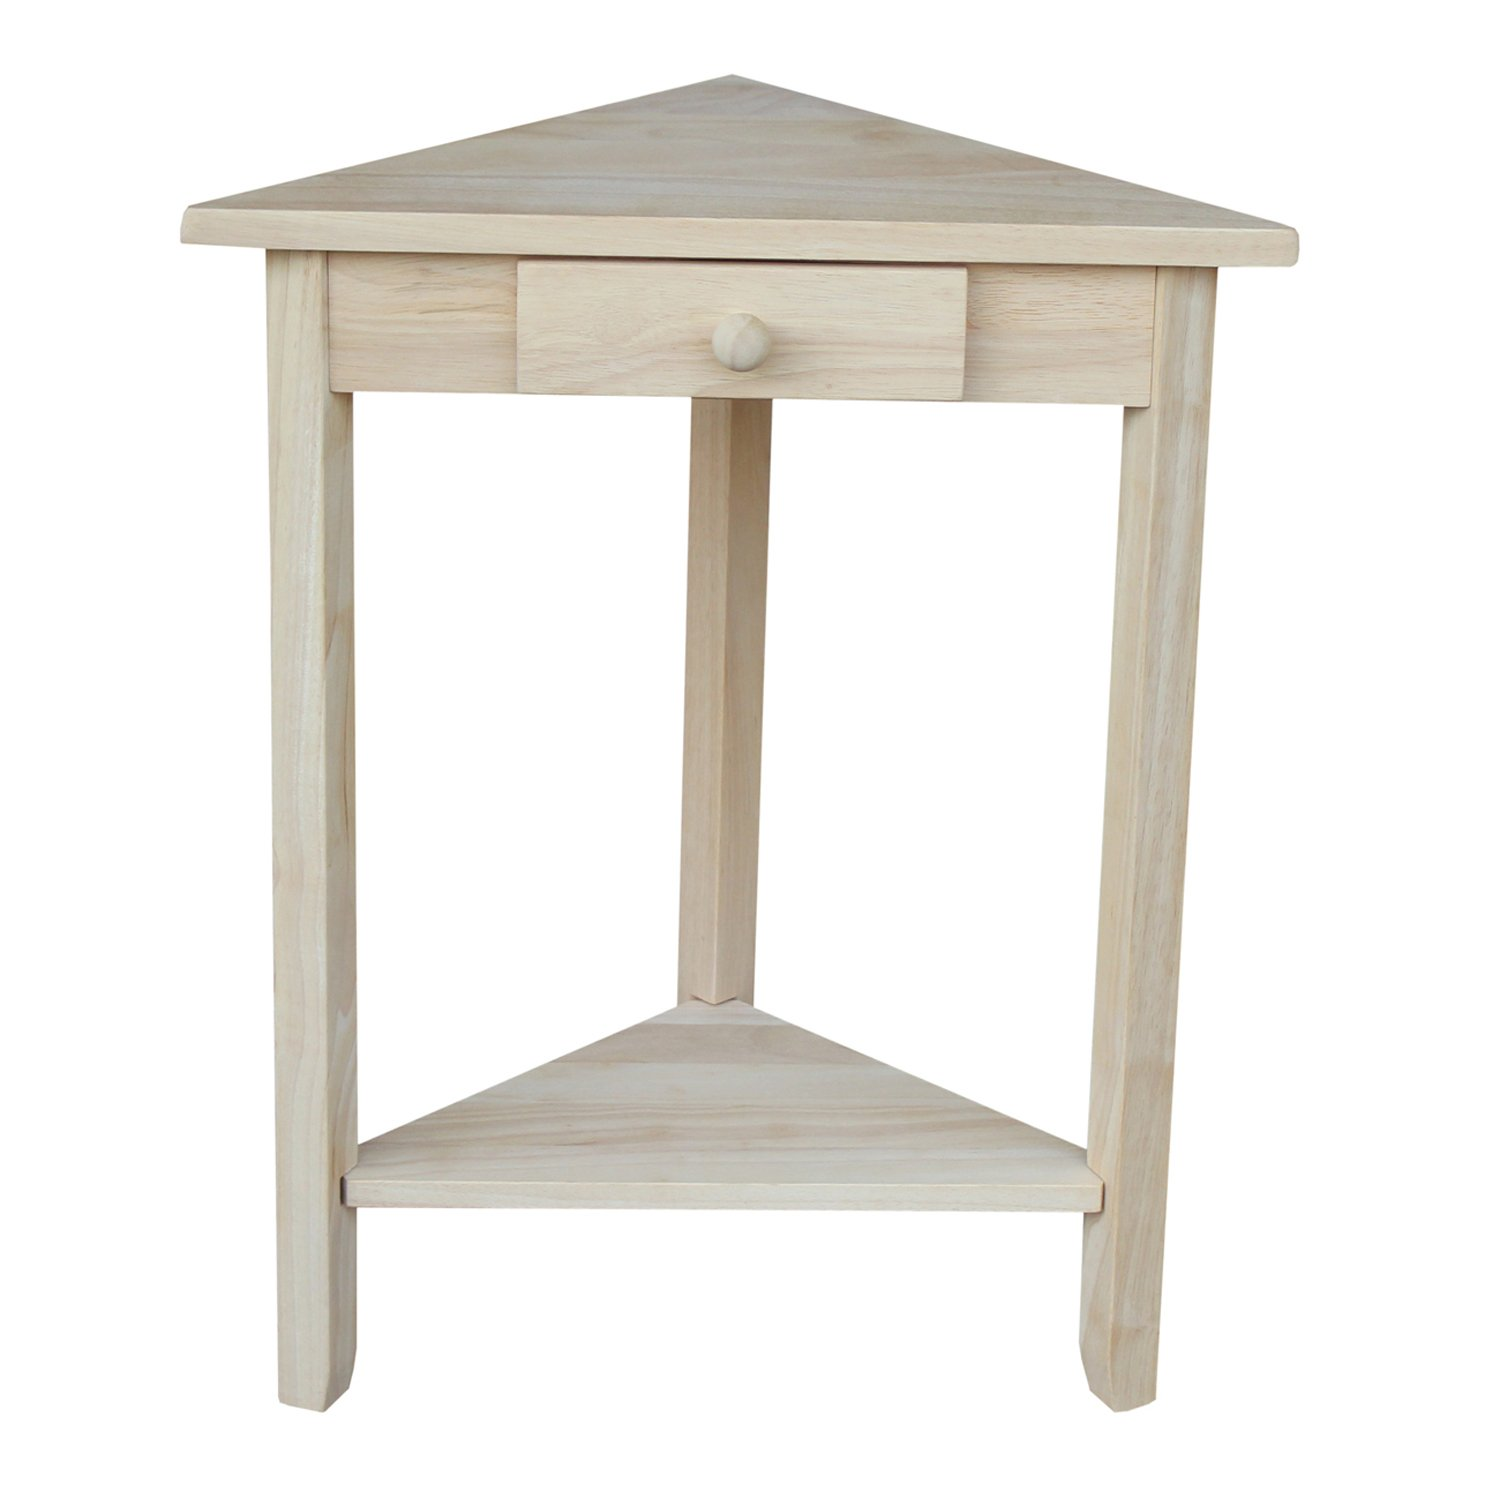 international concepts corner accent table distressed black unfinished kitchen dining metal room chairs white end tables decorative accessories wood top patio and espresso outside